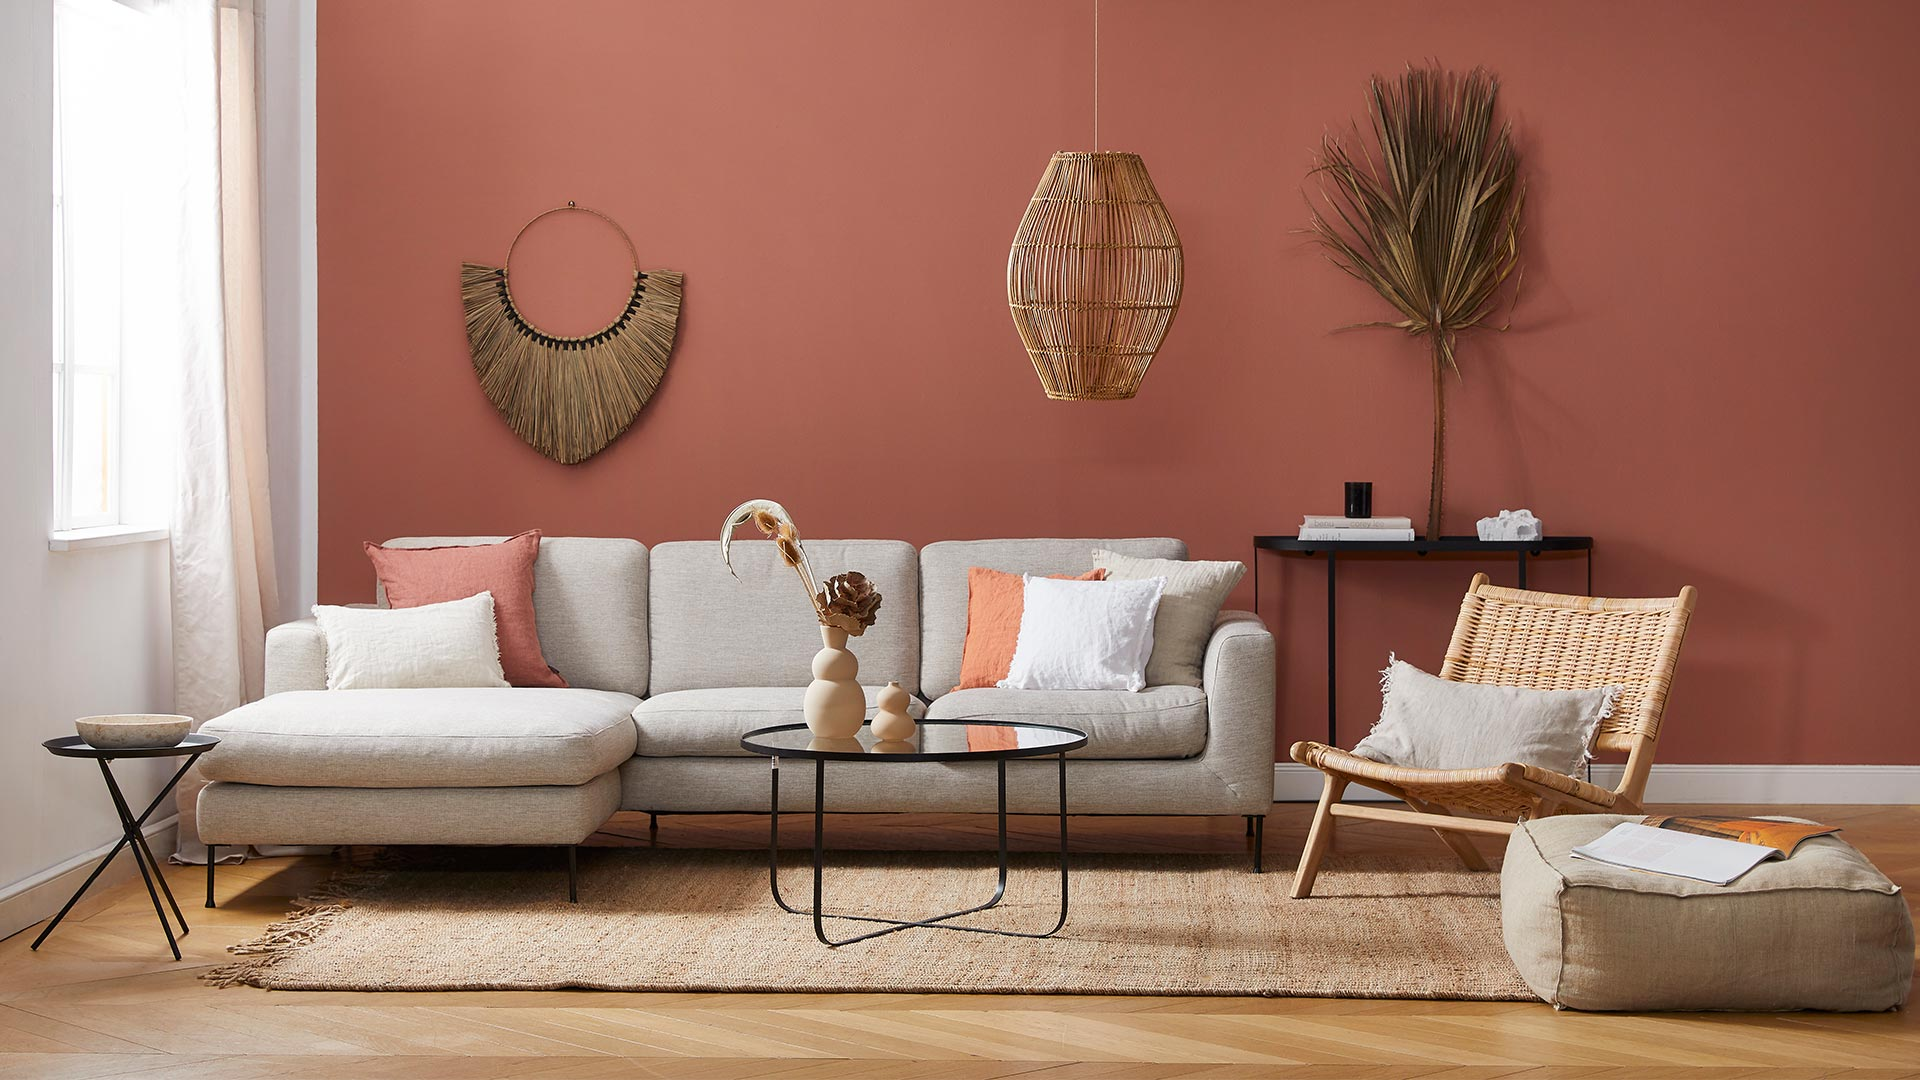 Beautiful Painting and decorating tips with Terracotta